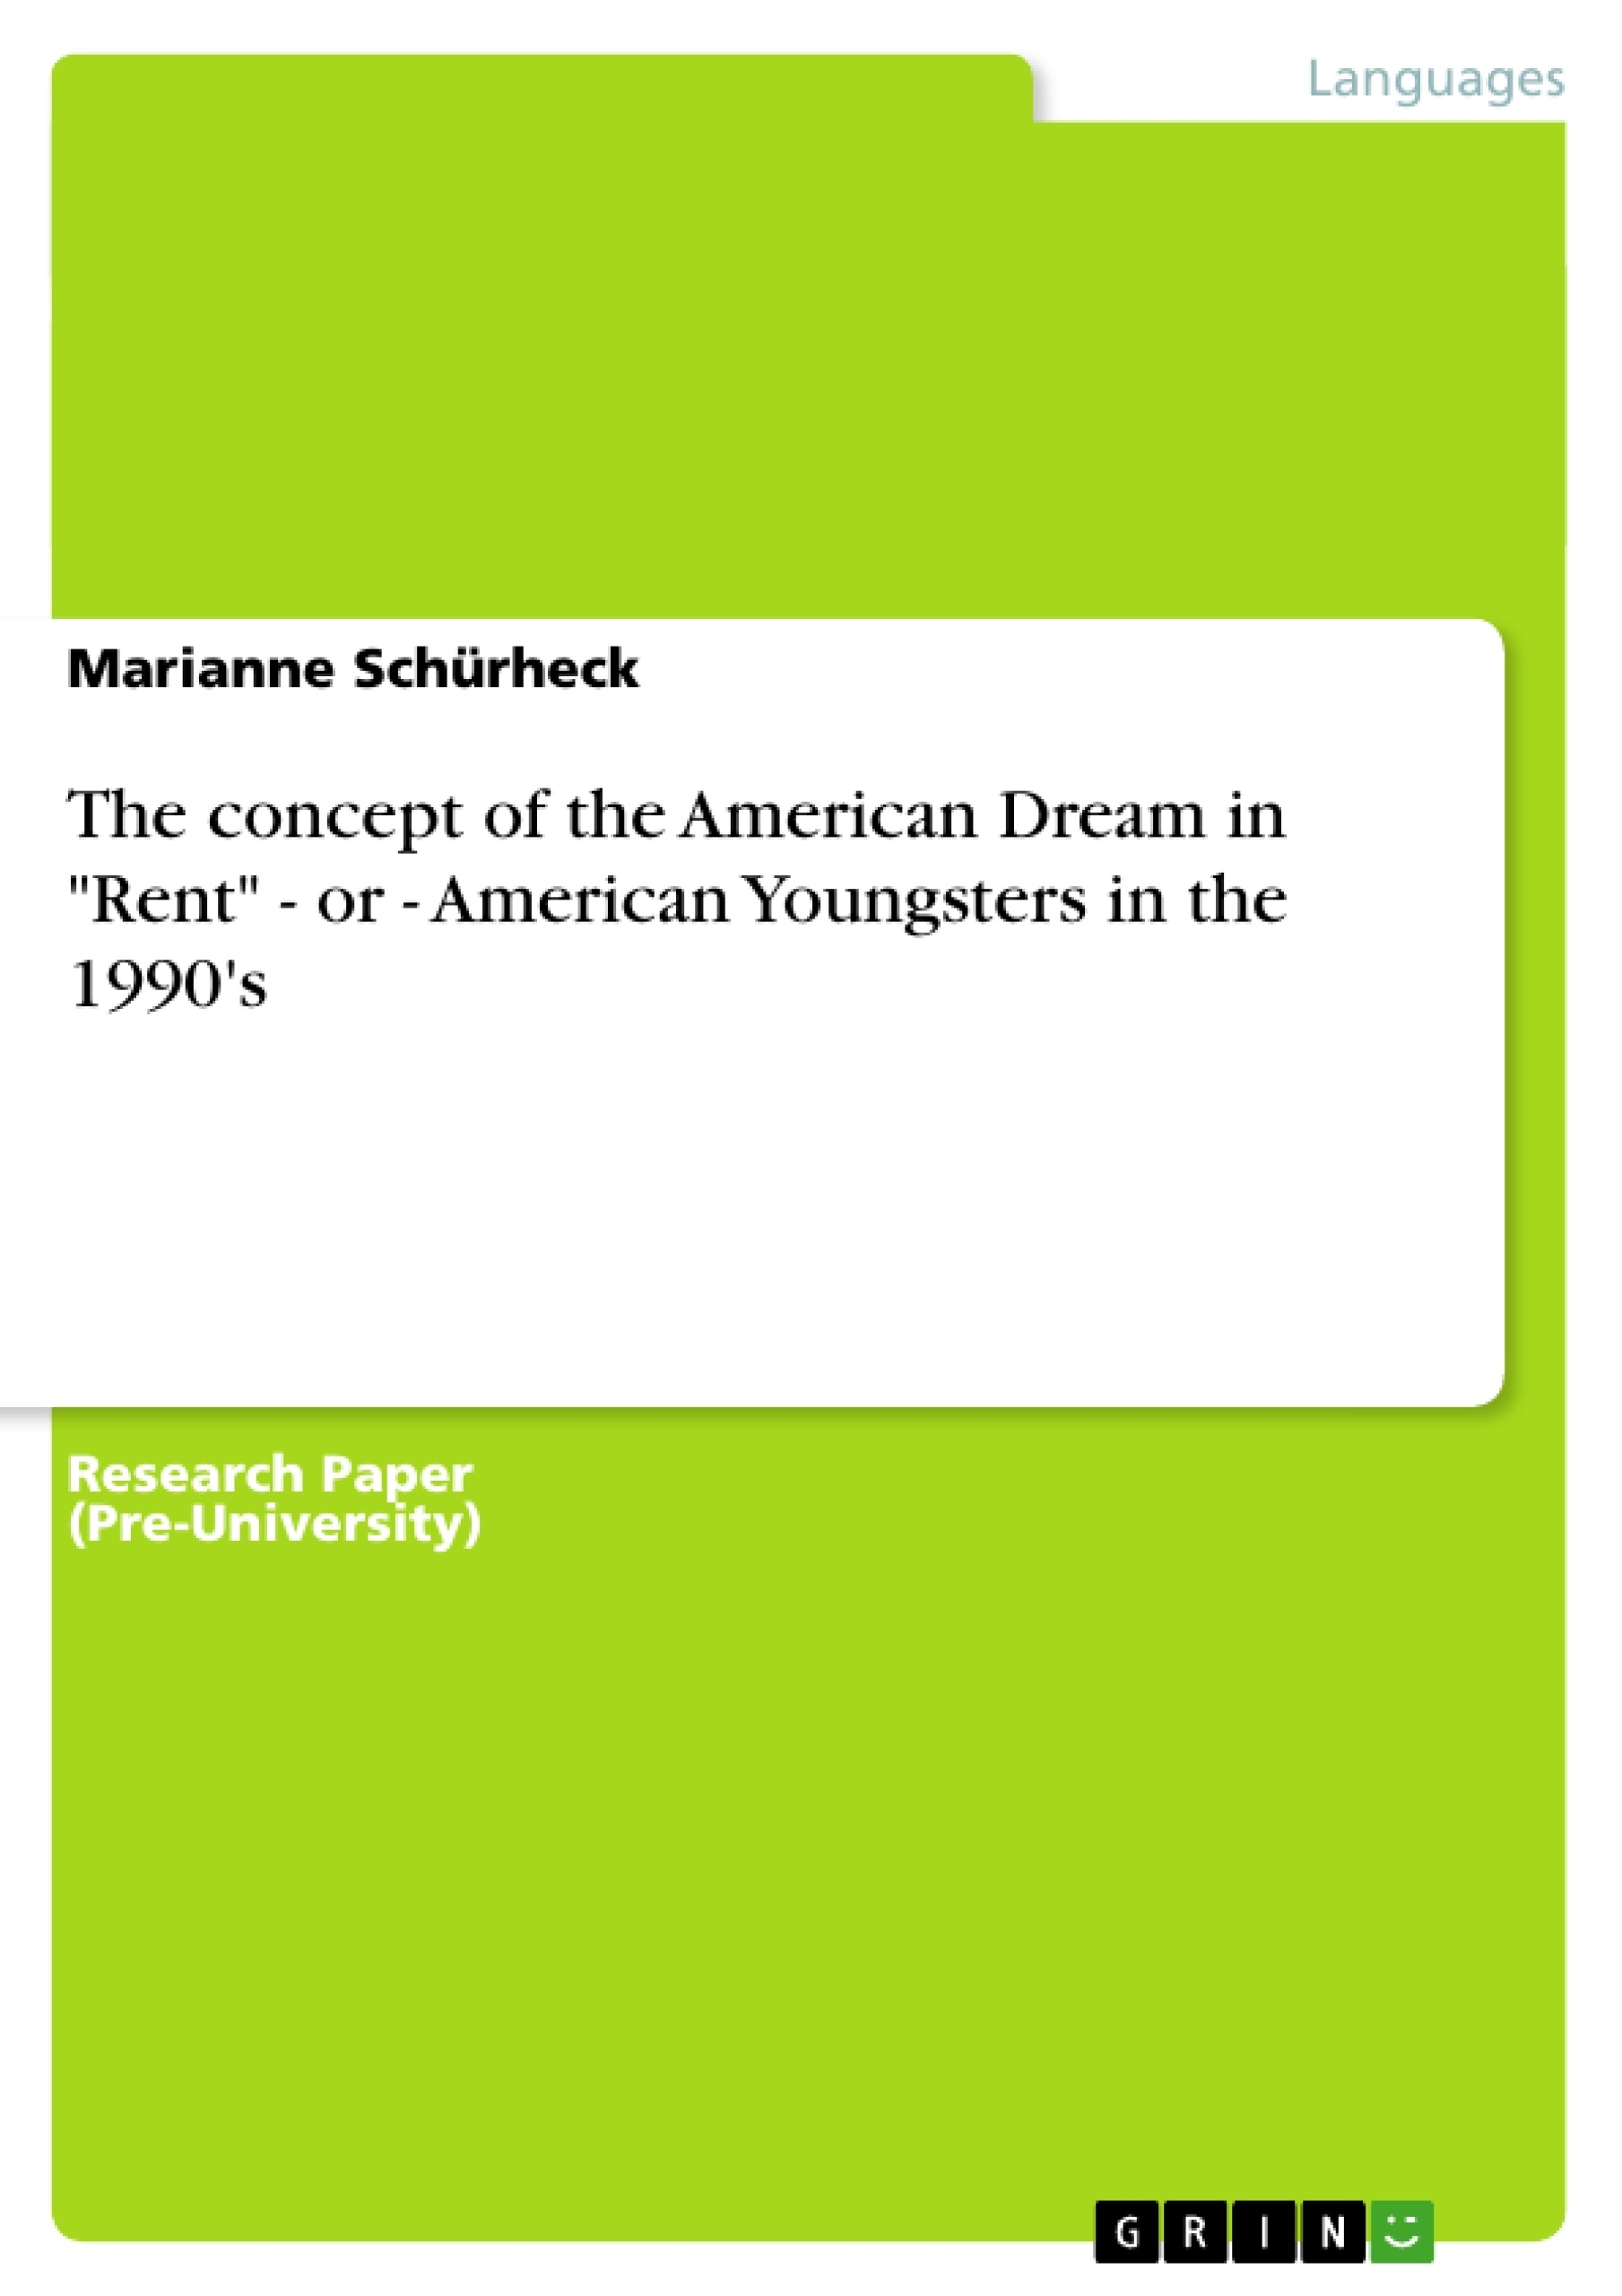 The American Dream / From Melting Pot to Multiculturism